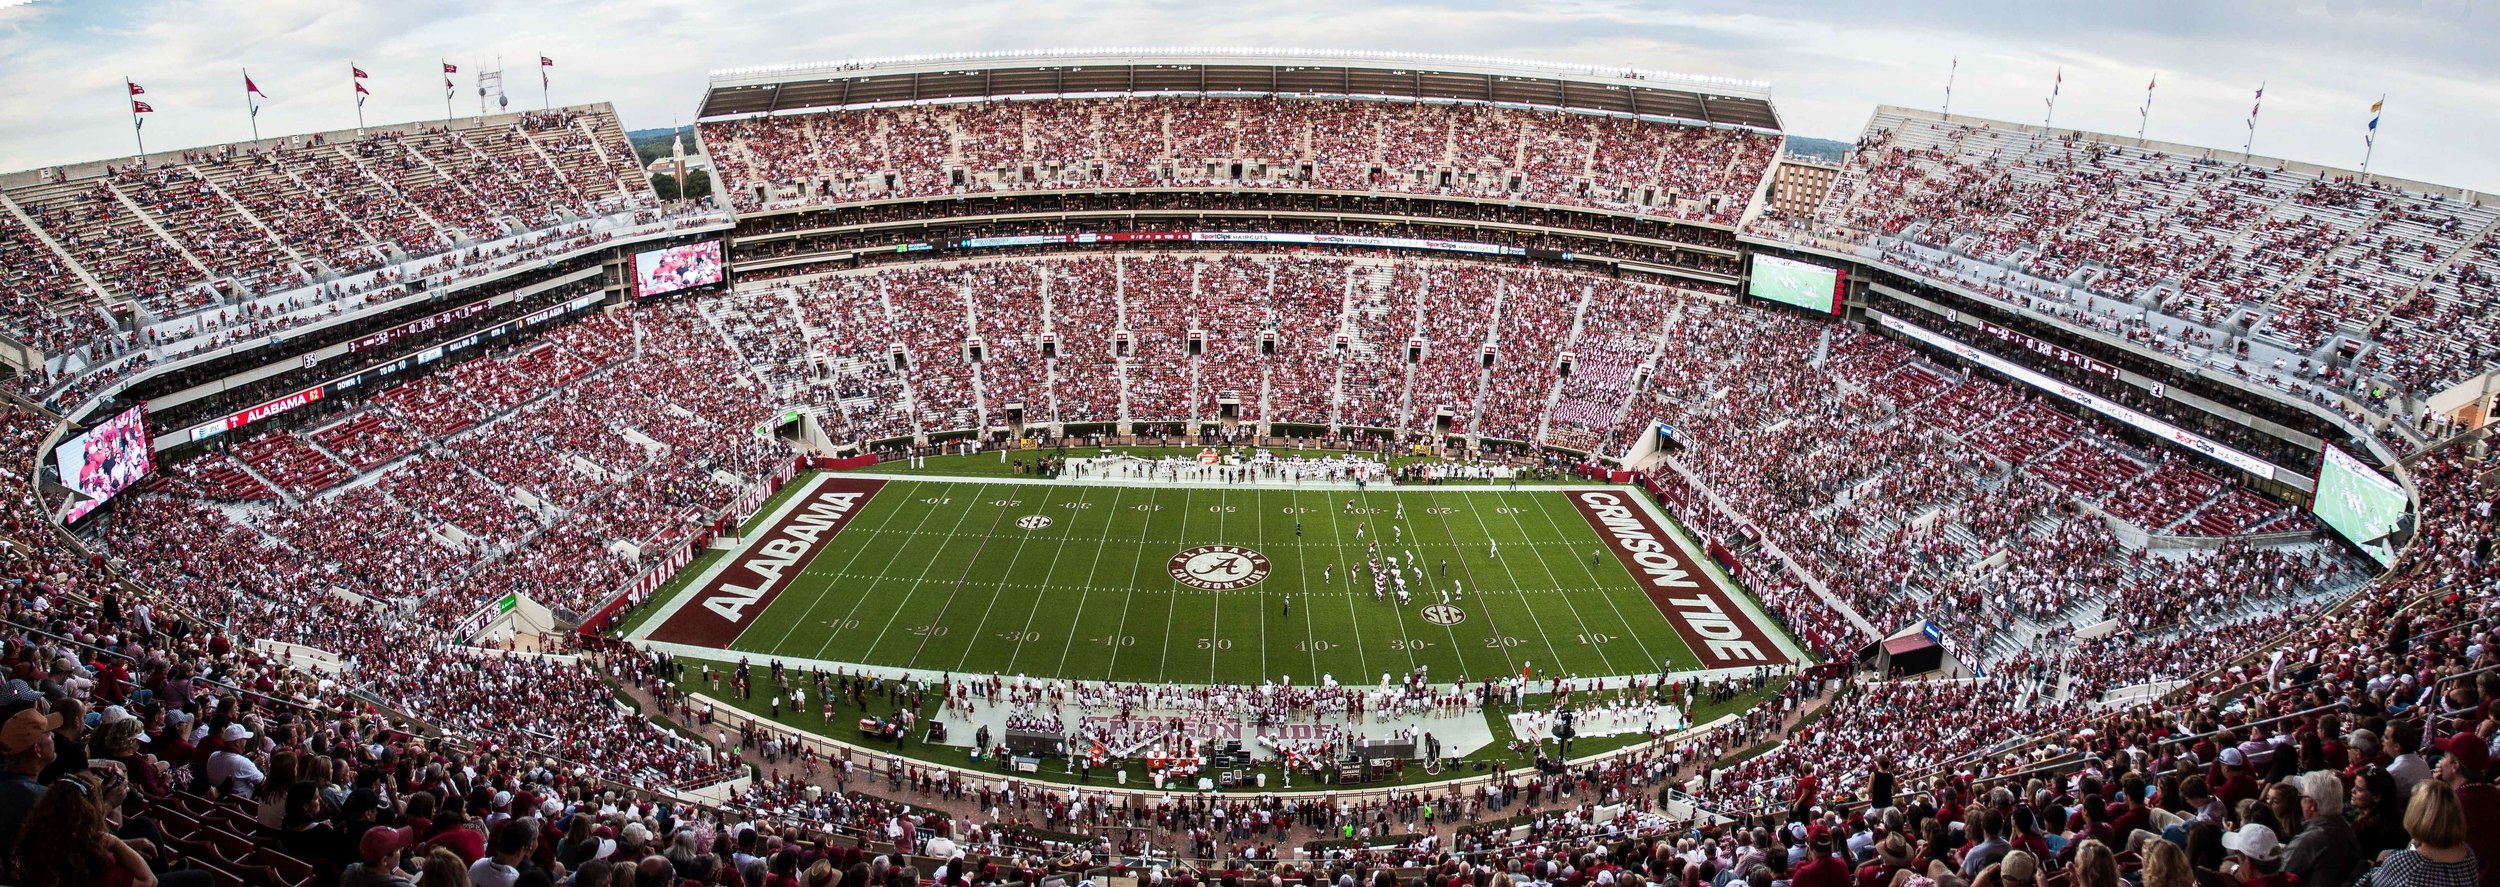 Here is my attempt at a panoramic shot of Bryant-Denny from the west side of the stadium. After seeing this I really wish I had a fisheye lens to capture more of the sky in this shot.